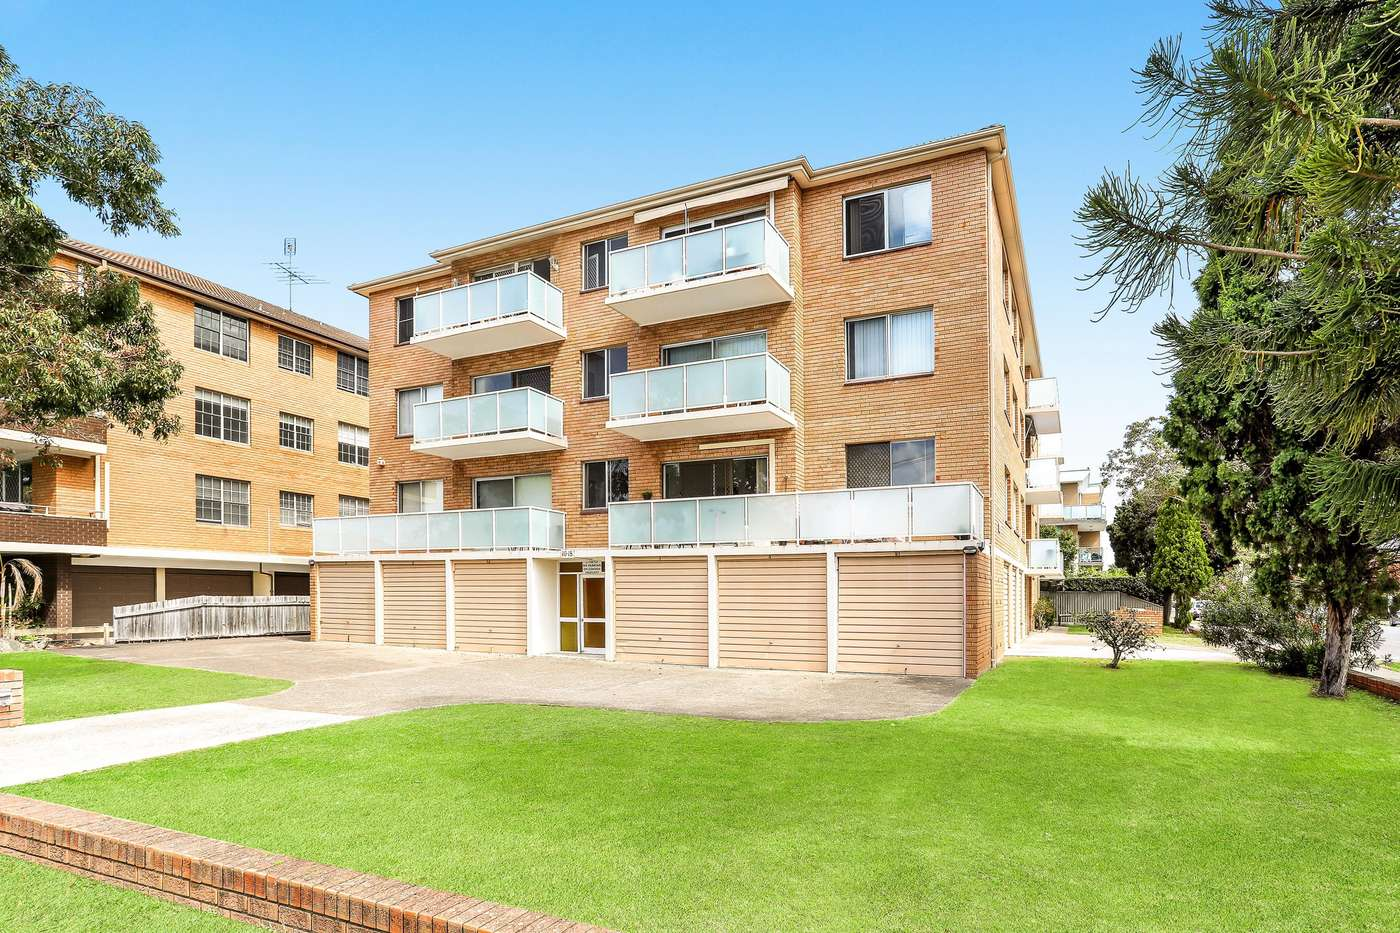 Main view of Homely unit listing, 6/16-18 Sellwood Street, Brighton-le-sands, NSW 2216